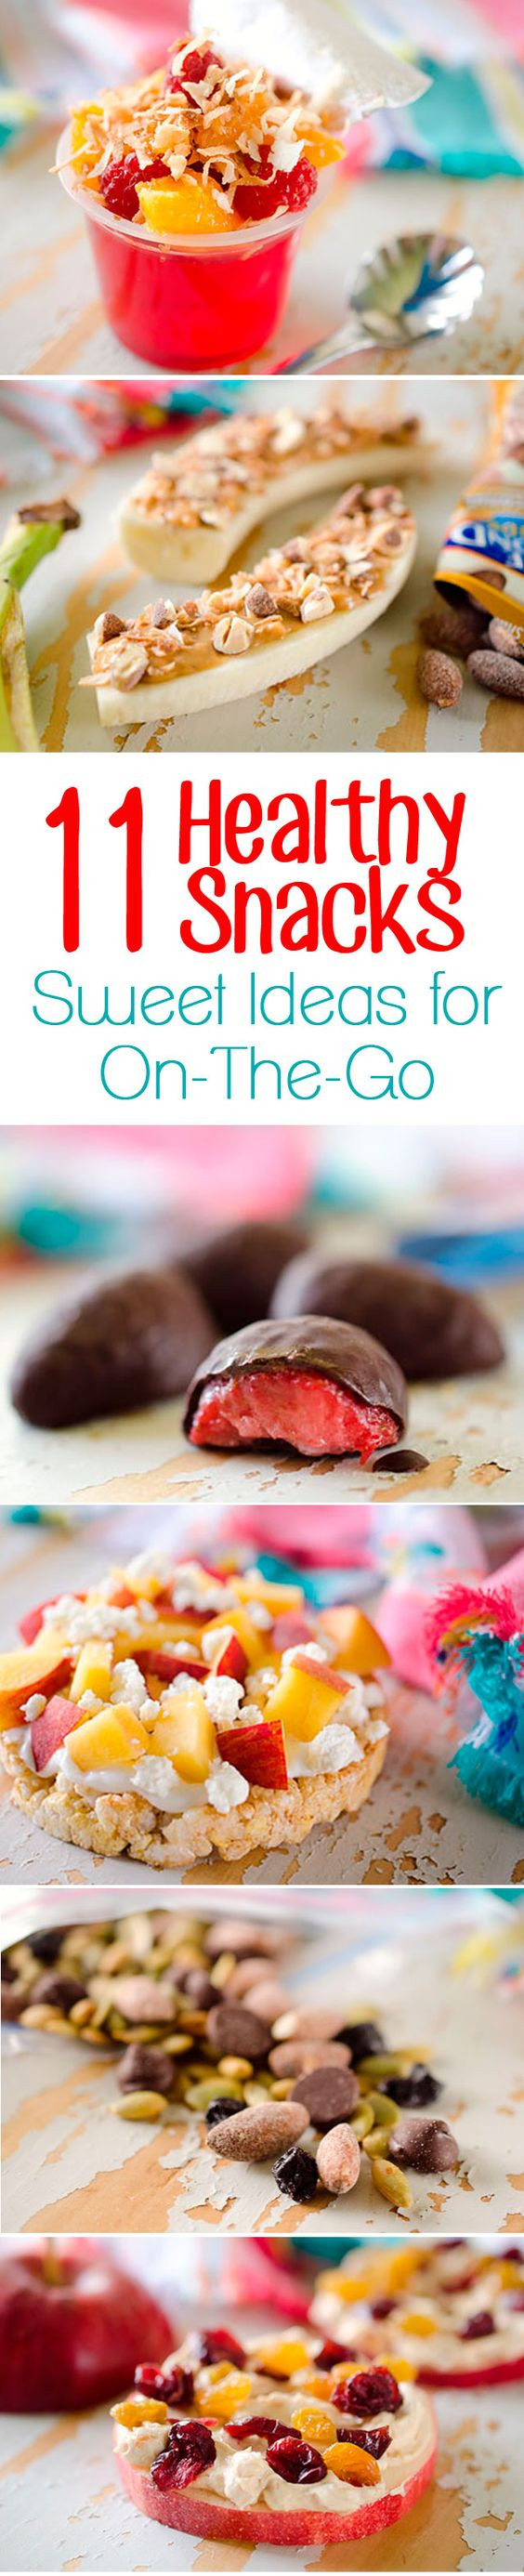 Quick Healthy Snacks On The Go  11 Healthy Snack Ideas Sweet Treats for The Go